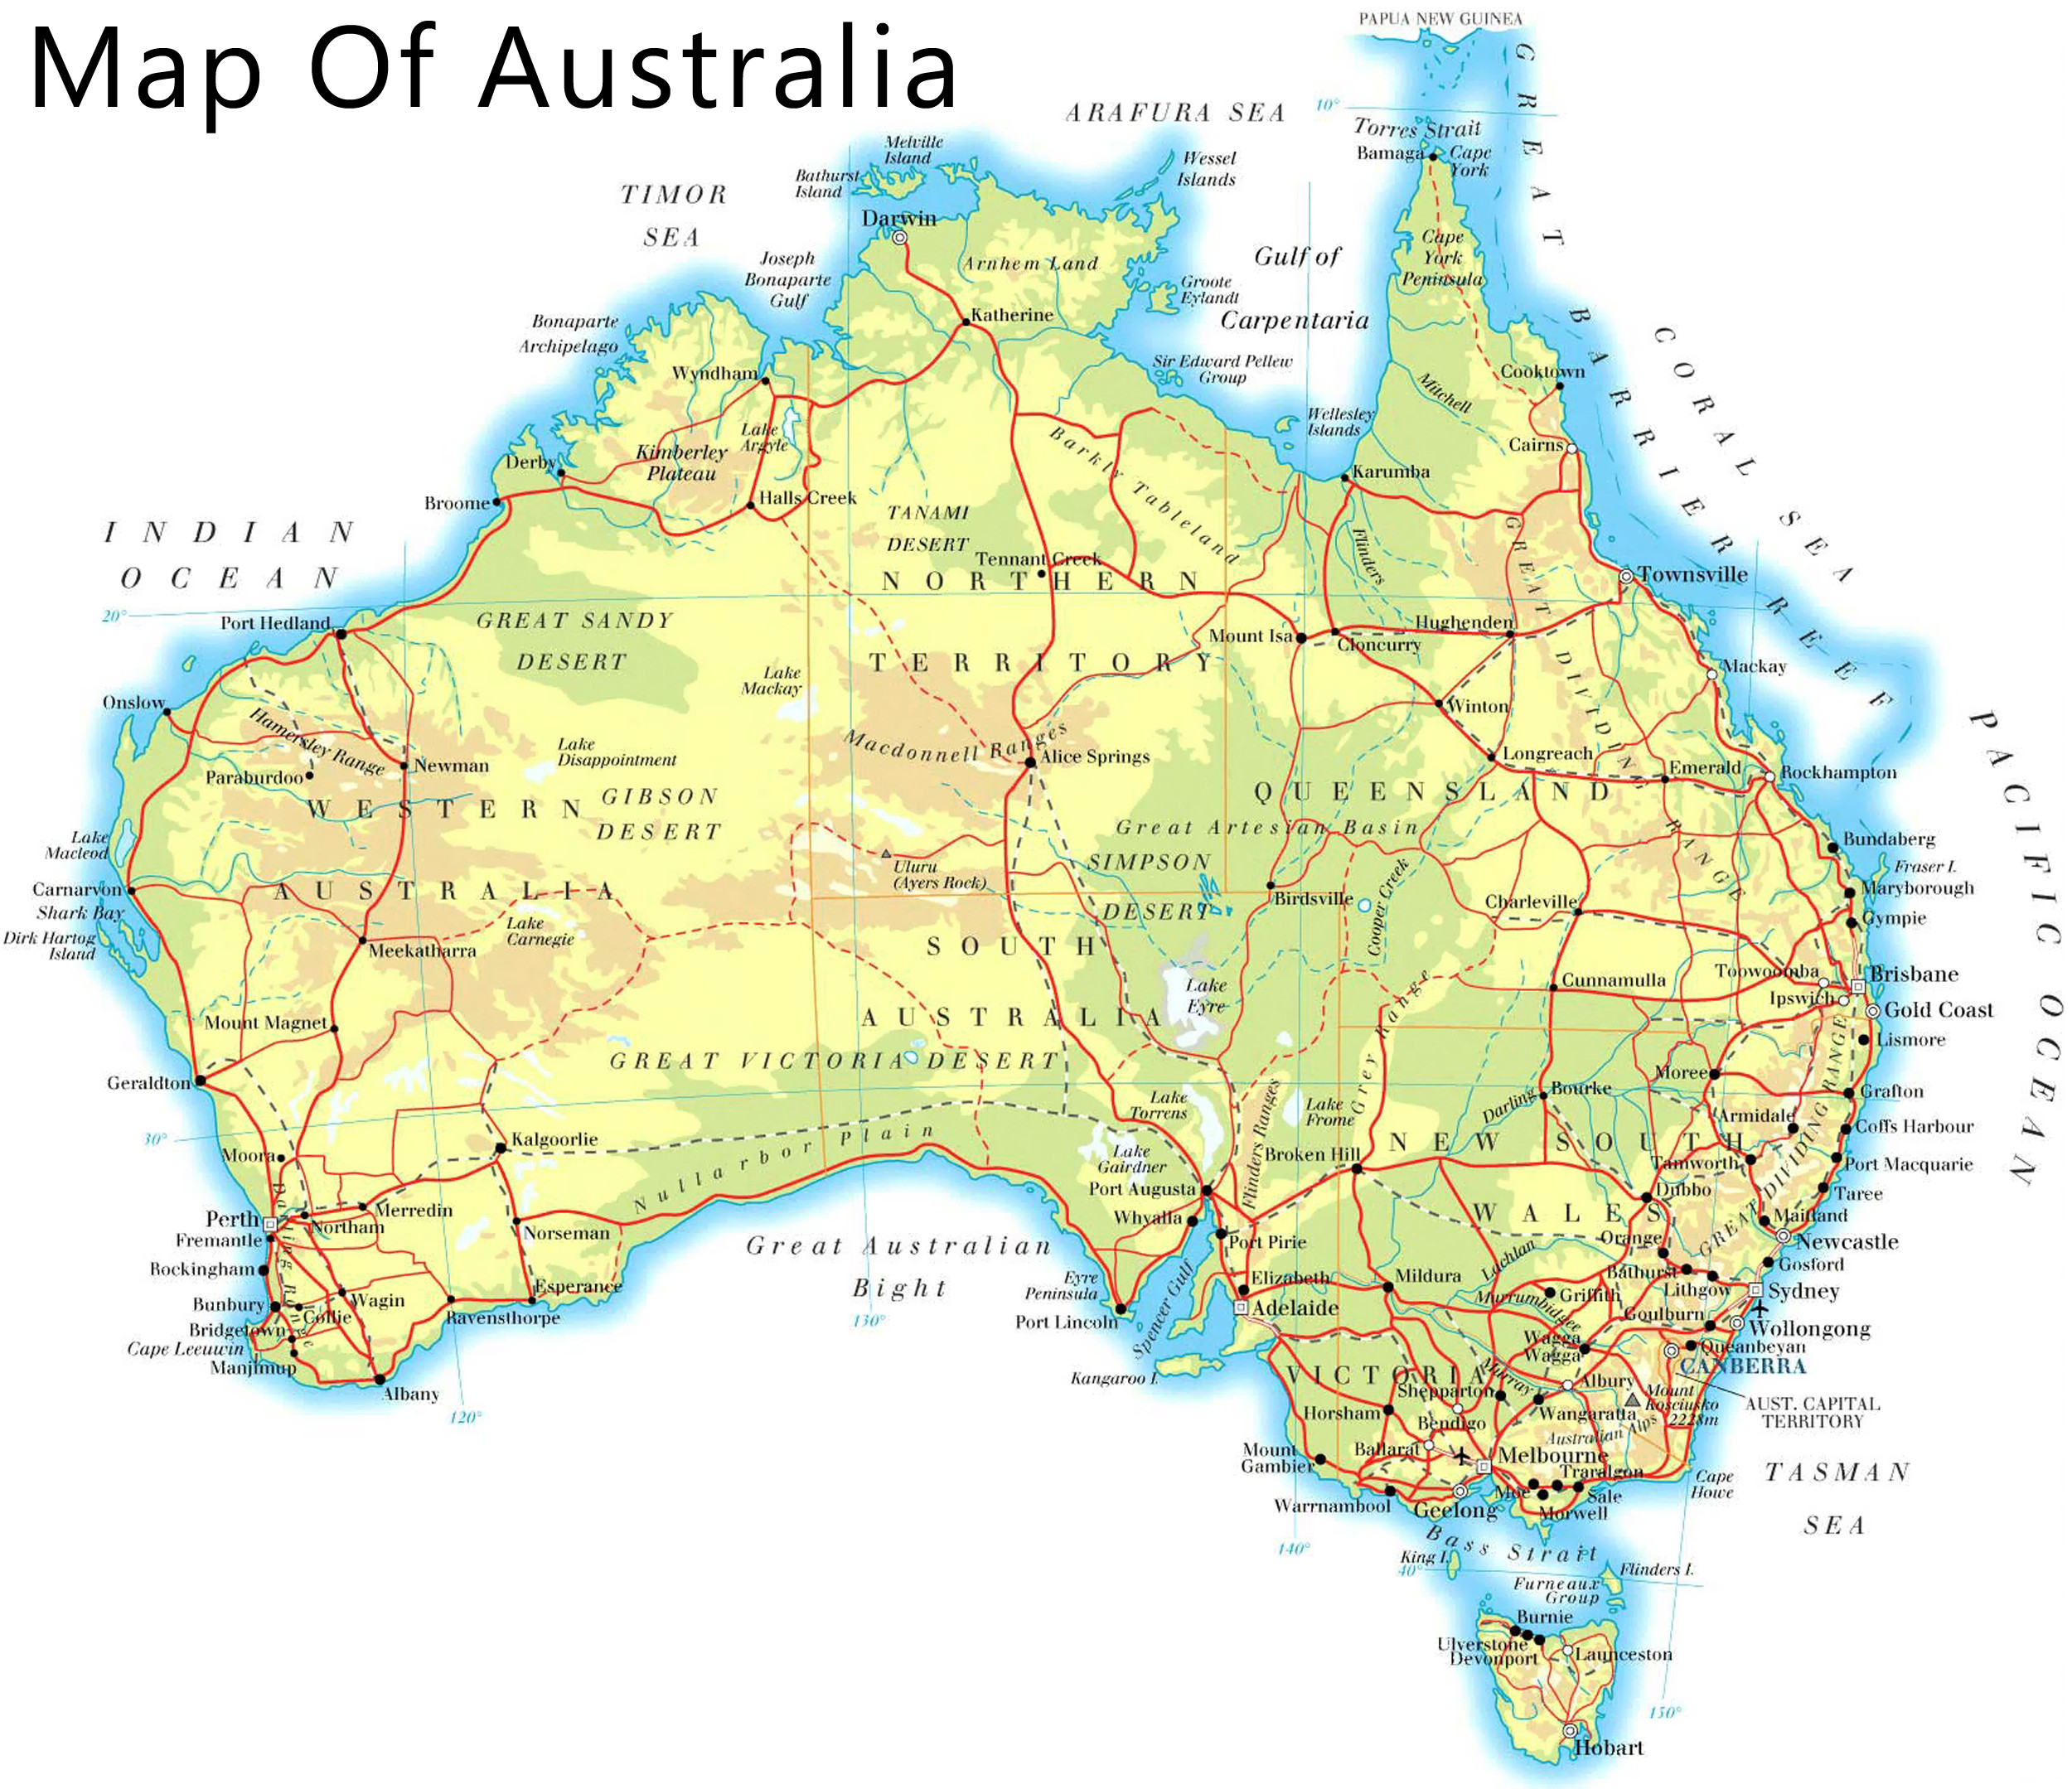 Maps Of The World To Print And Download Chameleon Web Services - Australian map of the world